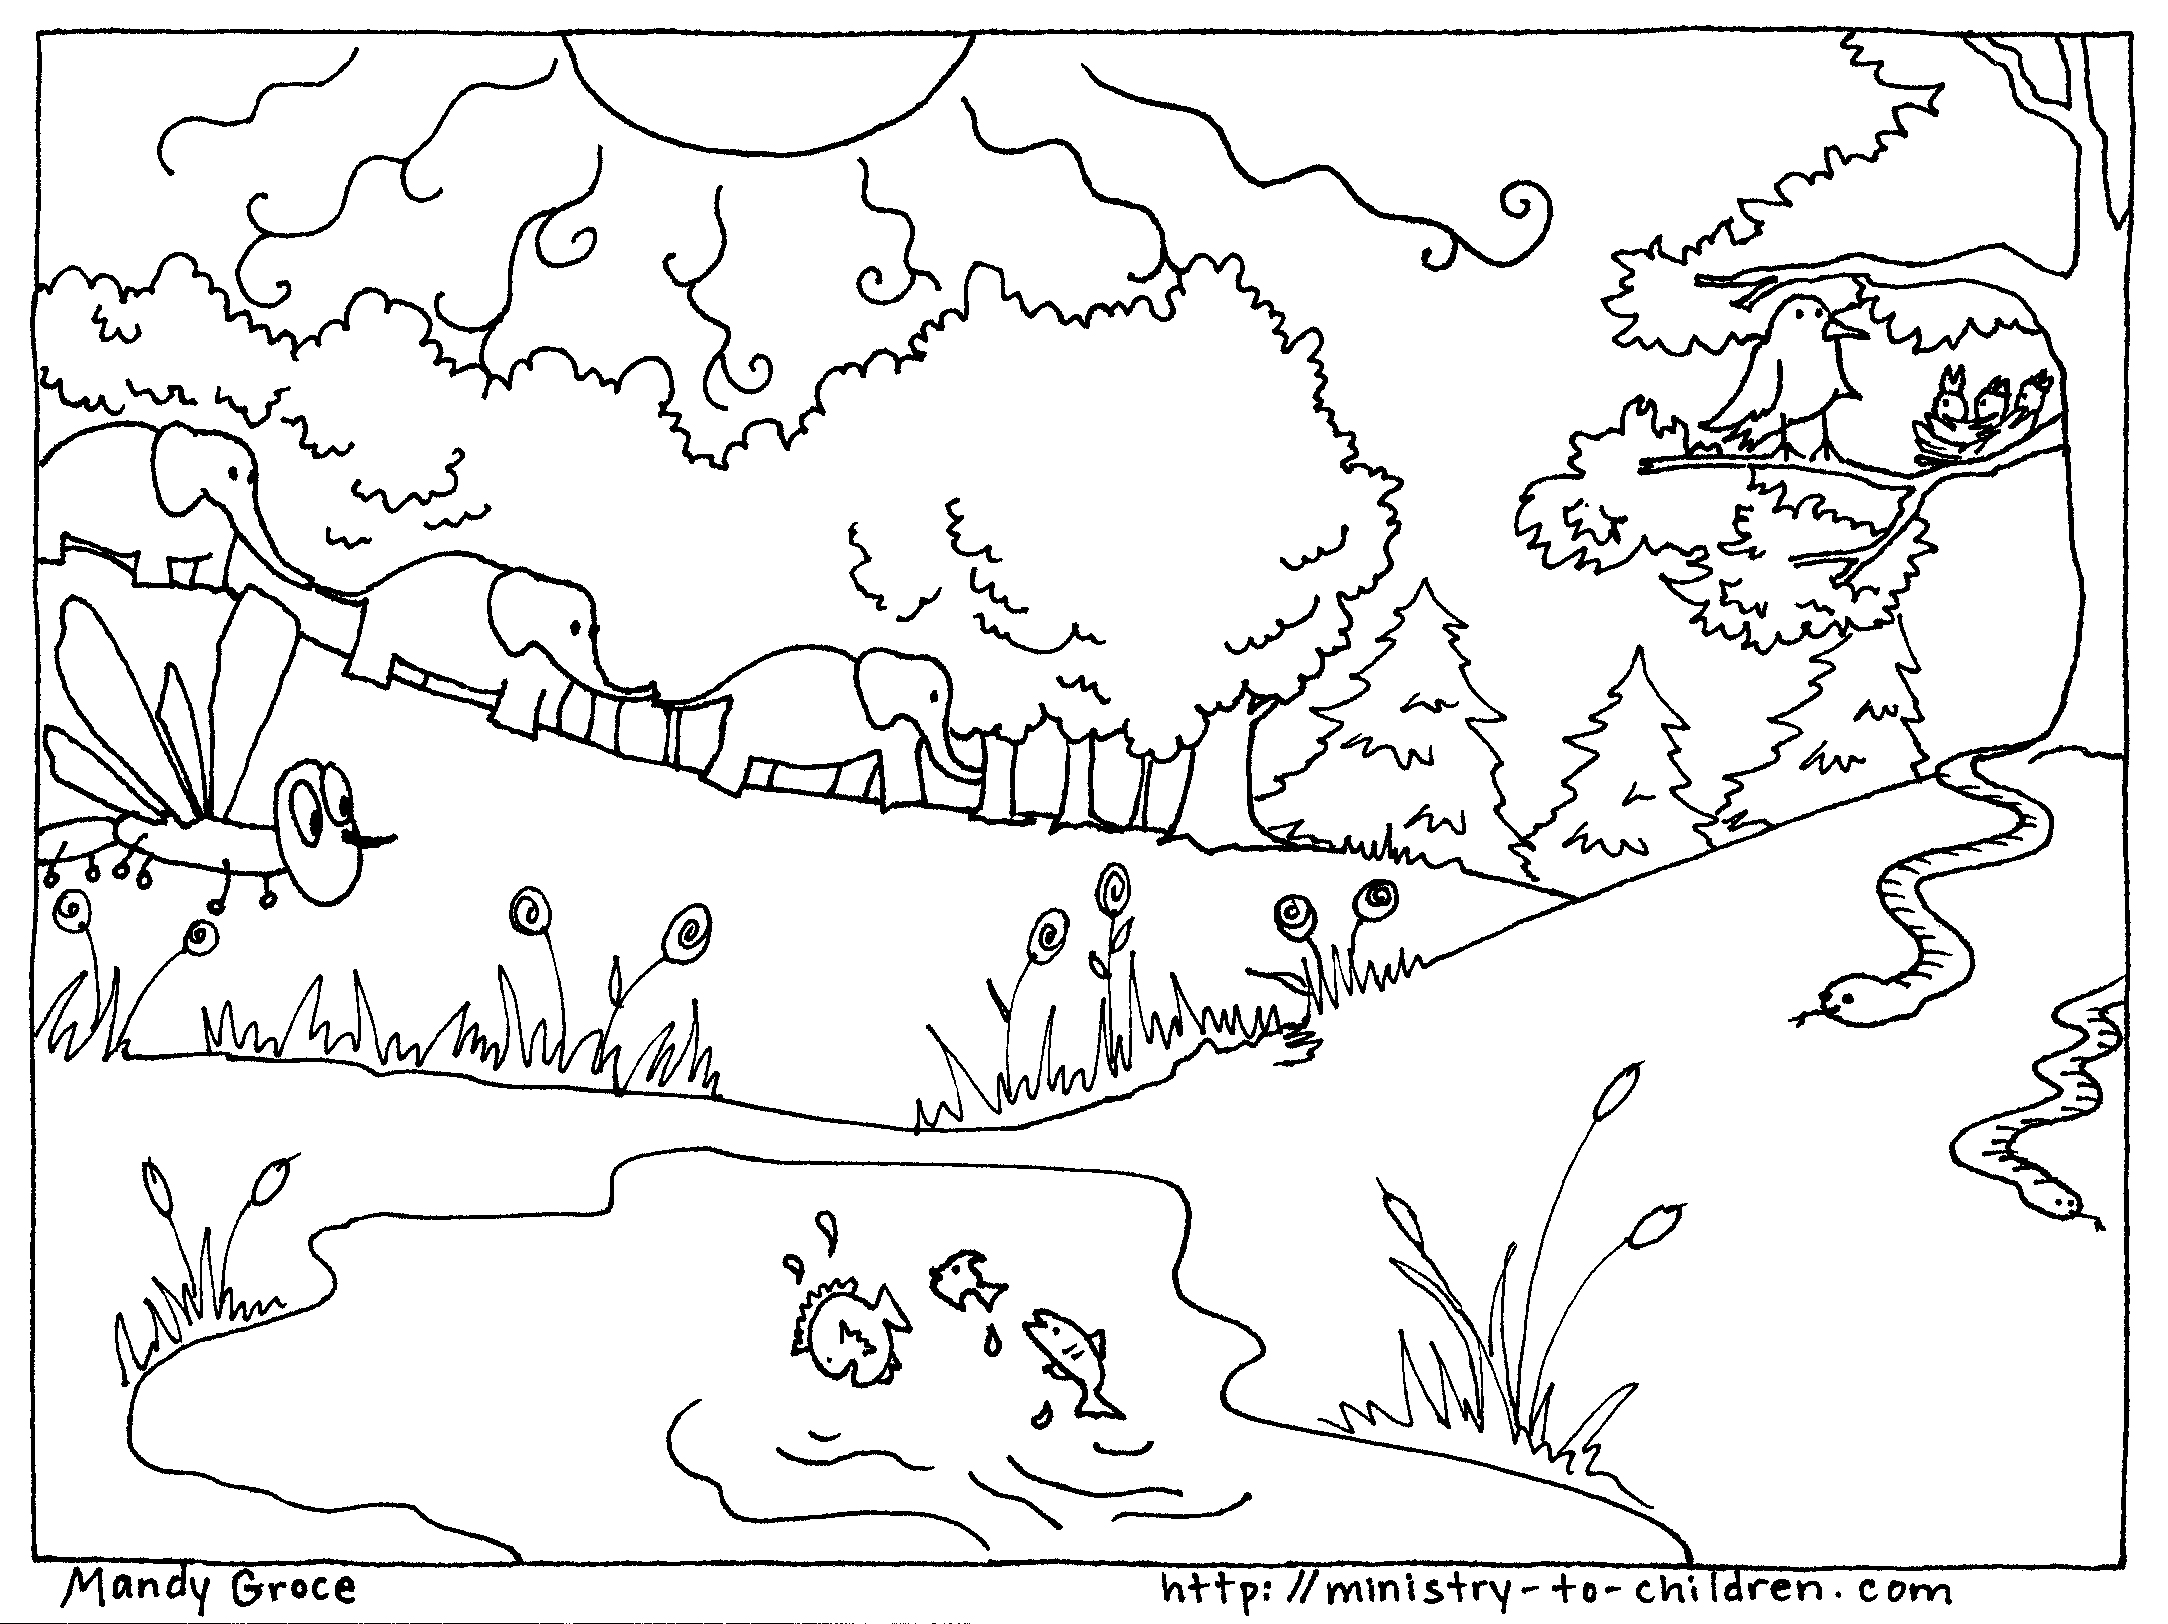 7 days of creation coloring pages free 7 days of creation coloring pages coloring home free 7 of creation pages days coloring